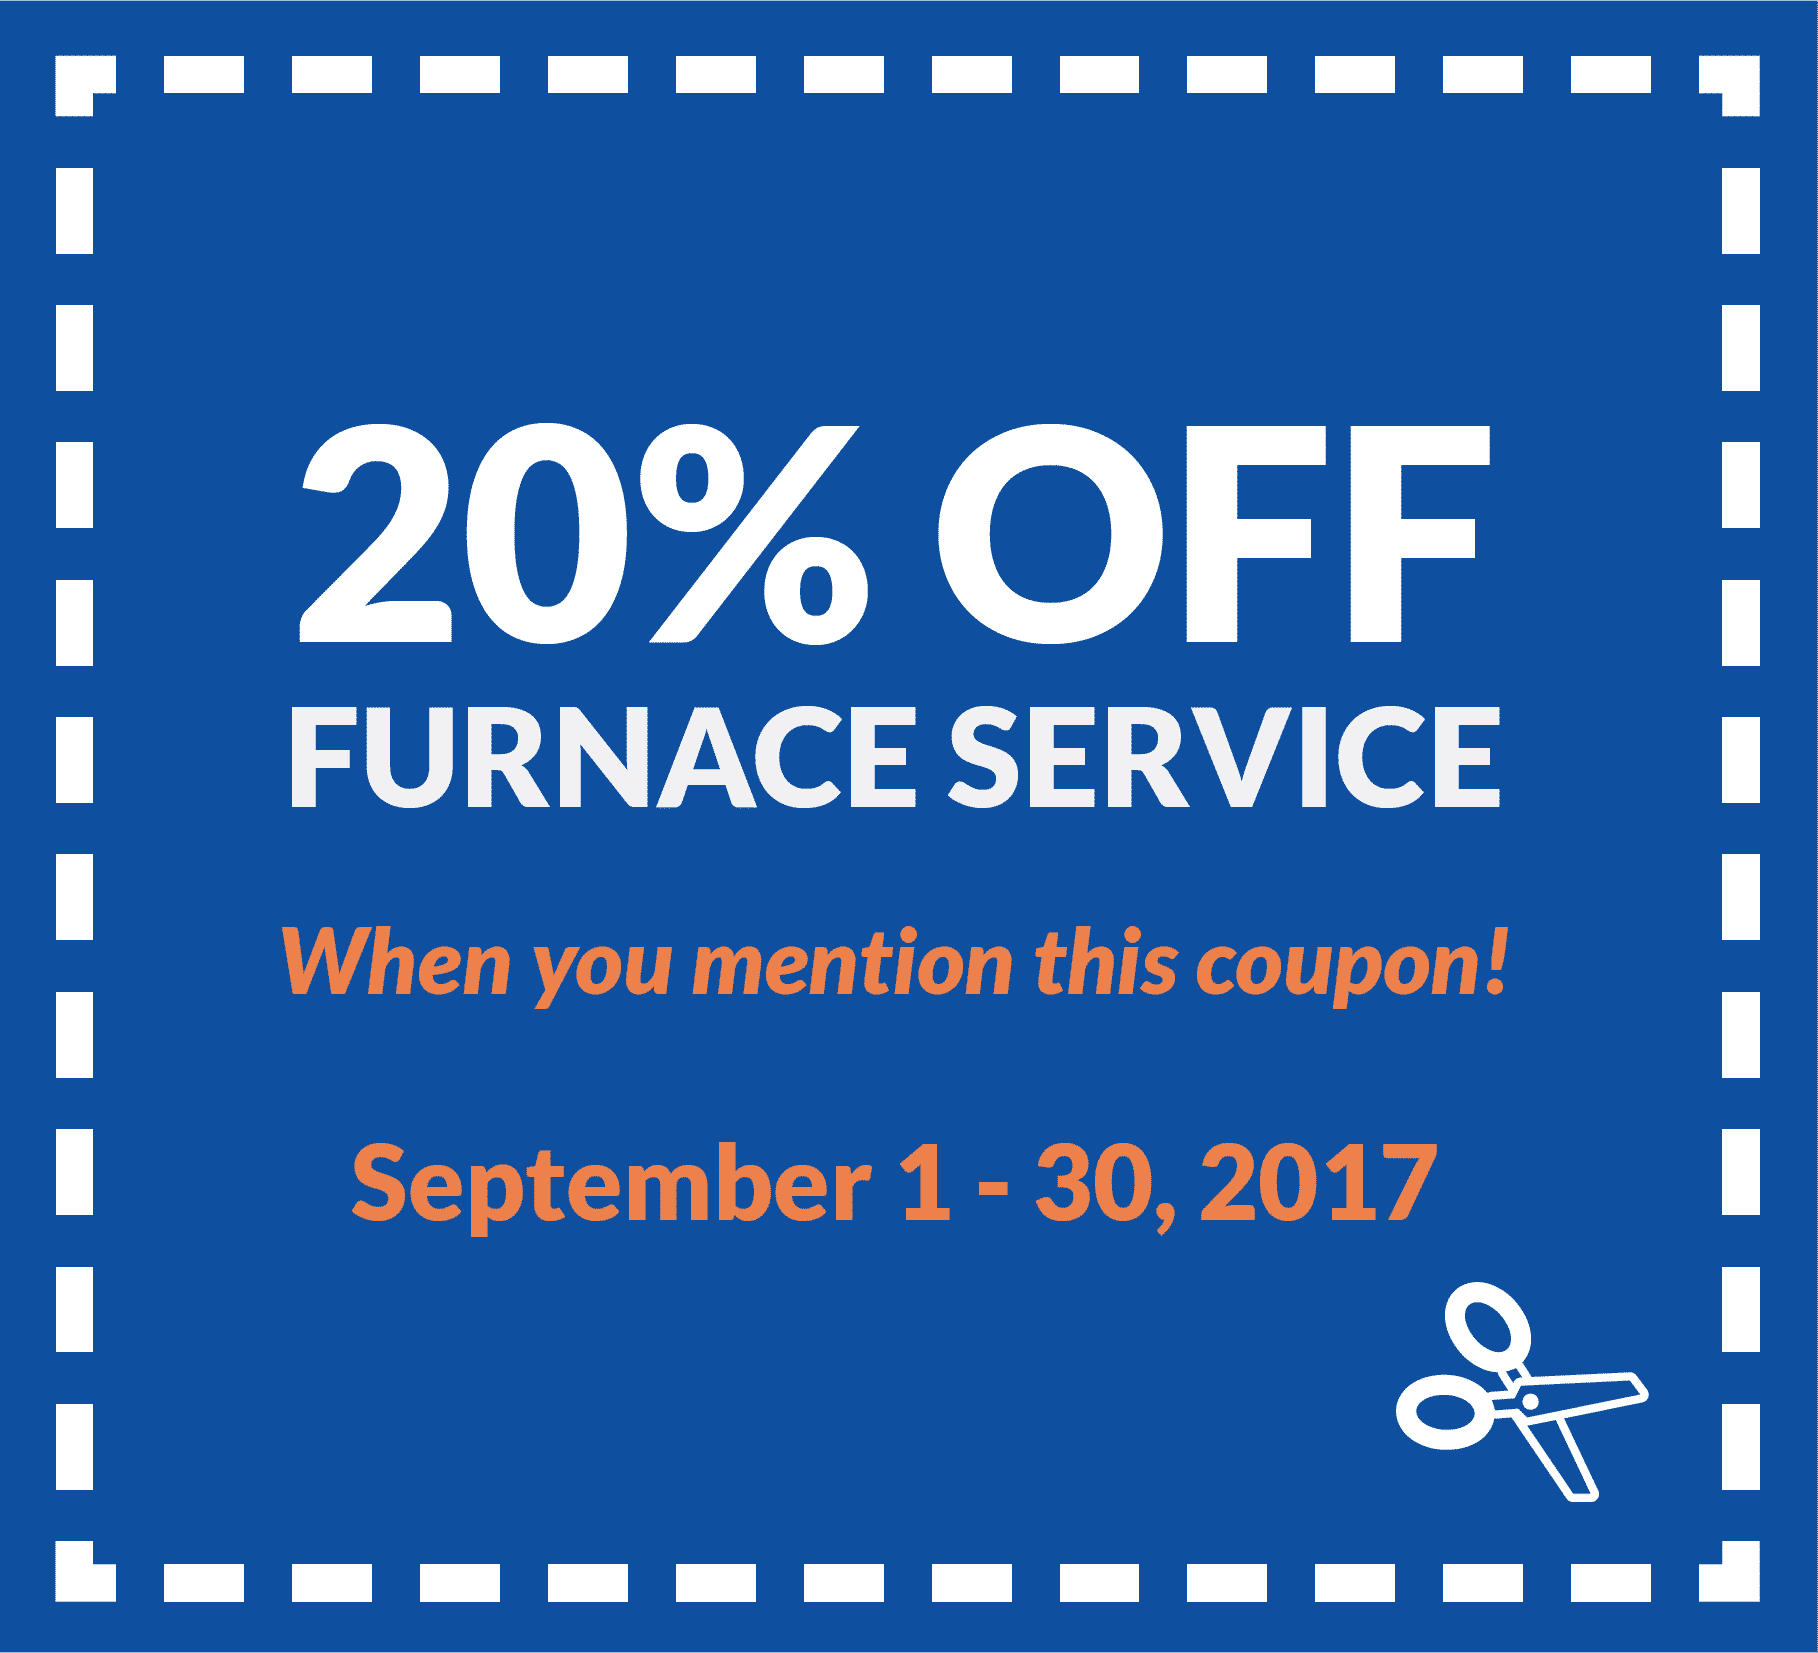 Coupon for 20% off furnace service, when you mention this coupon. Valid from September 1 to 30, 2017.